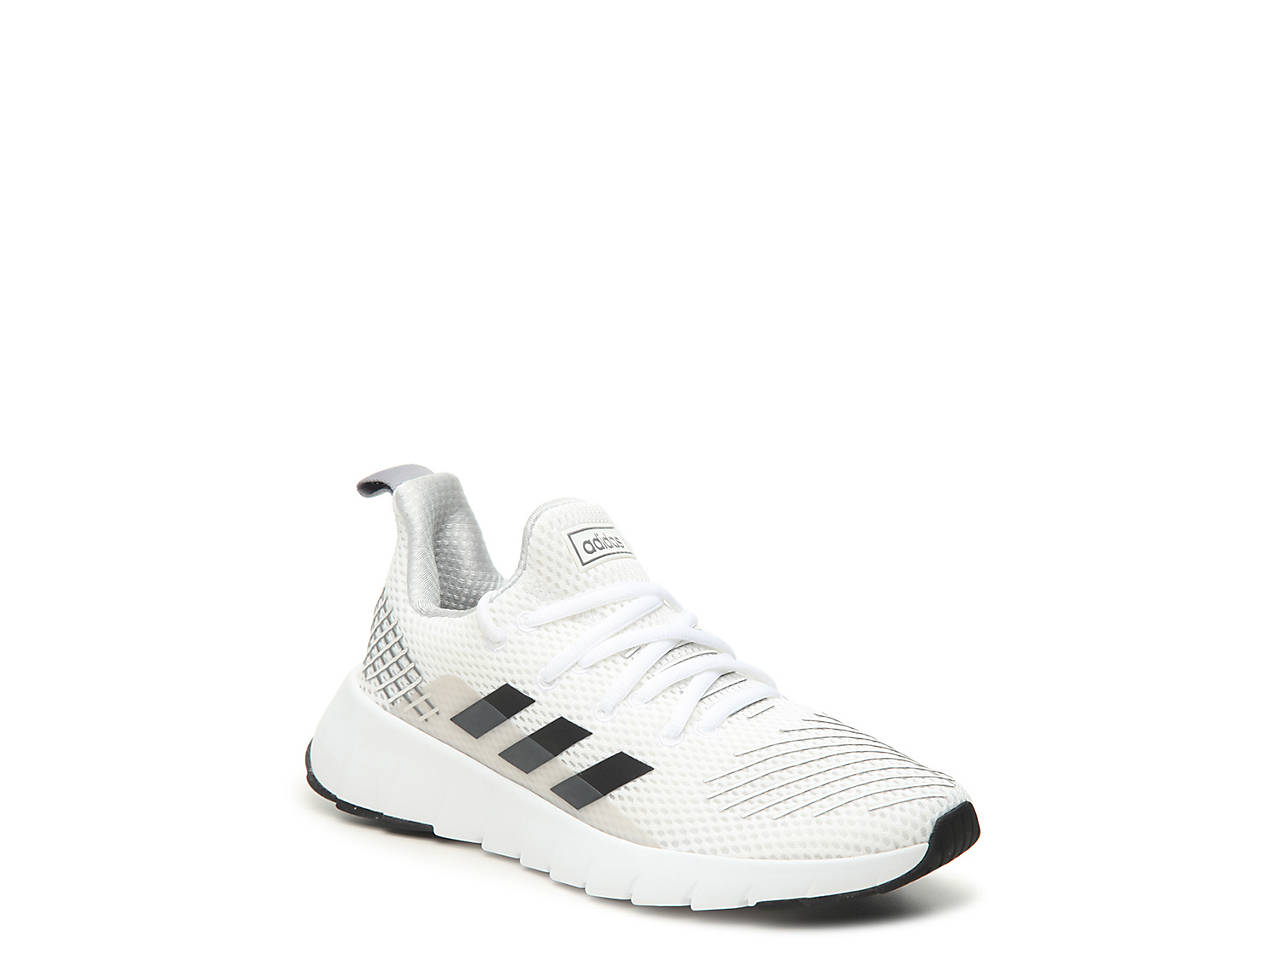 online retailer 6f647 a505b Kids Sneakers Adidas